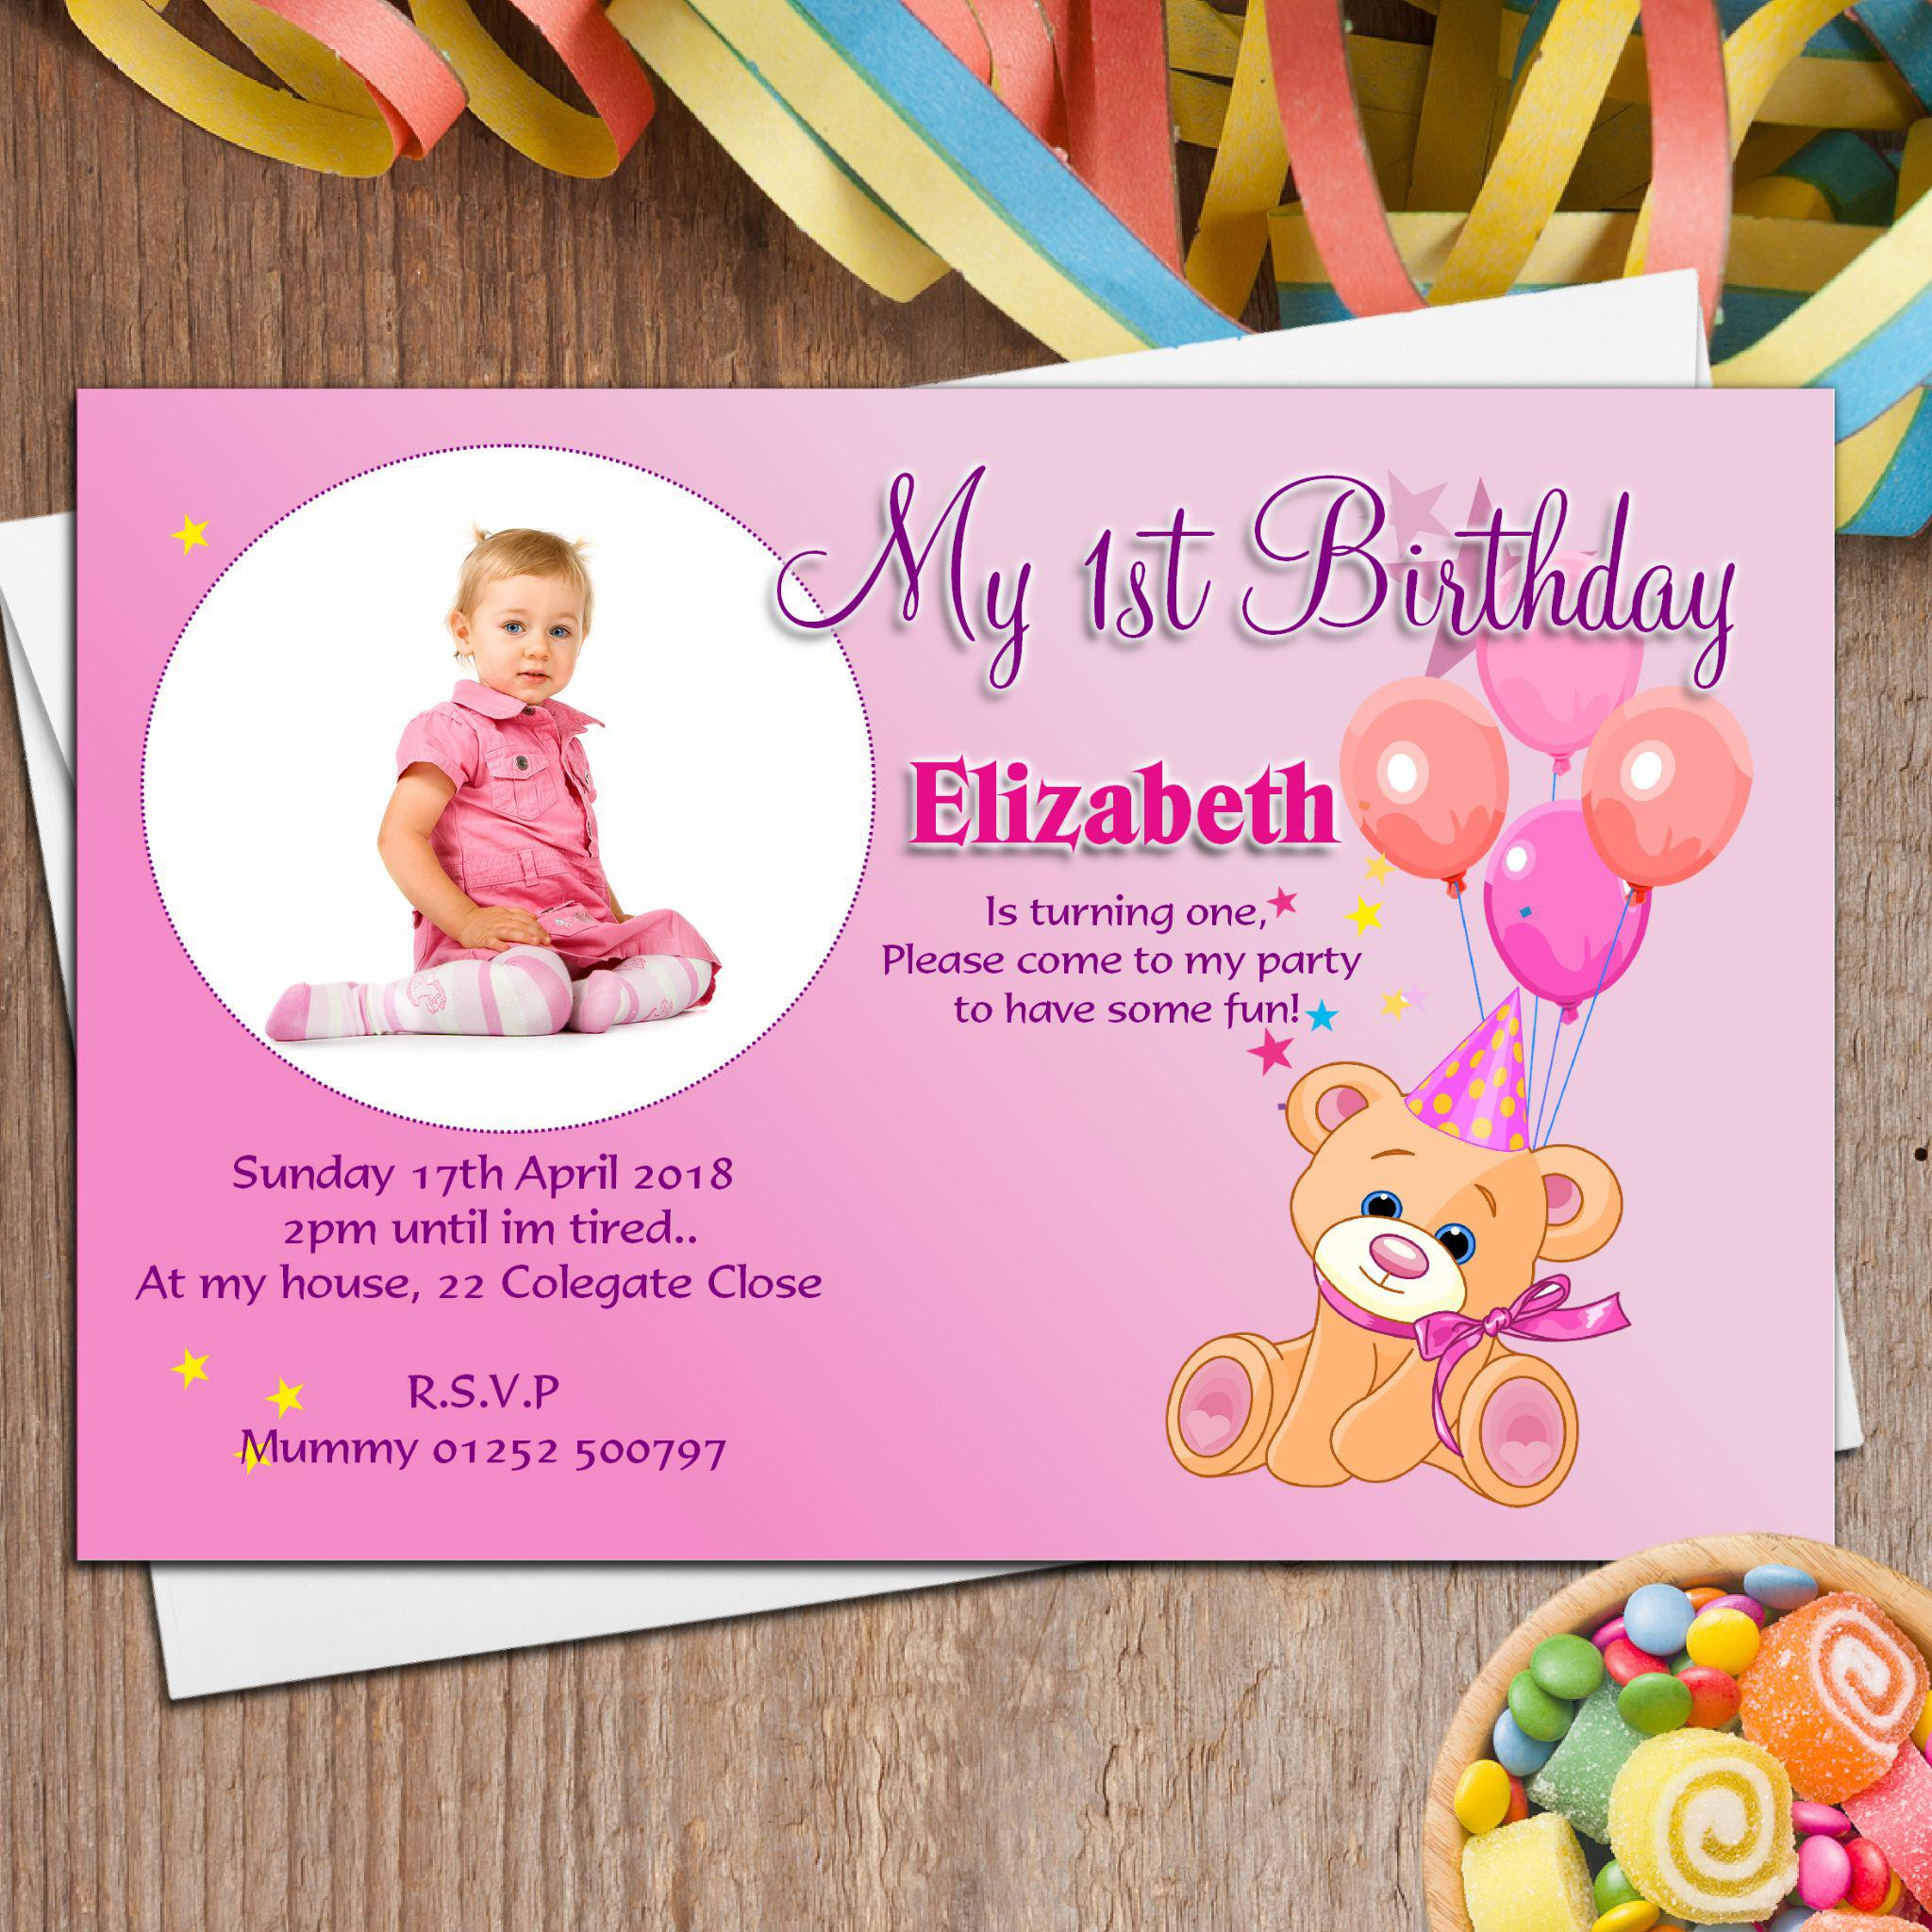 20 birthday invitations cards sample wording printable birthday invitation cards personalized teddy party for girl stopboris Image collections